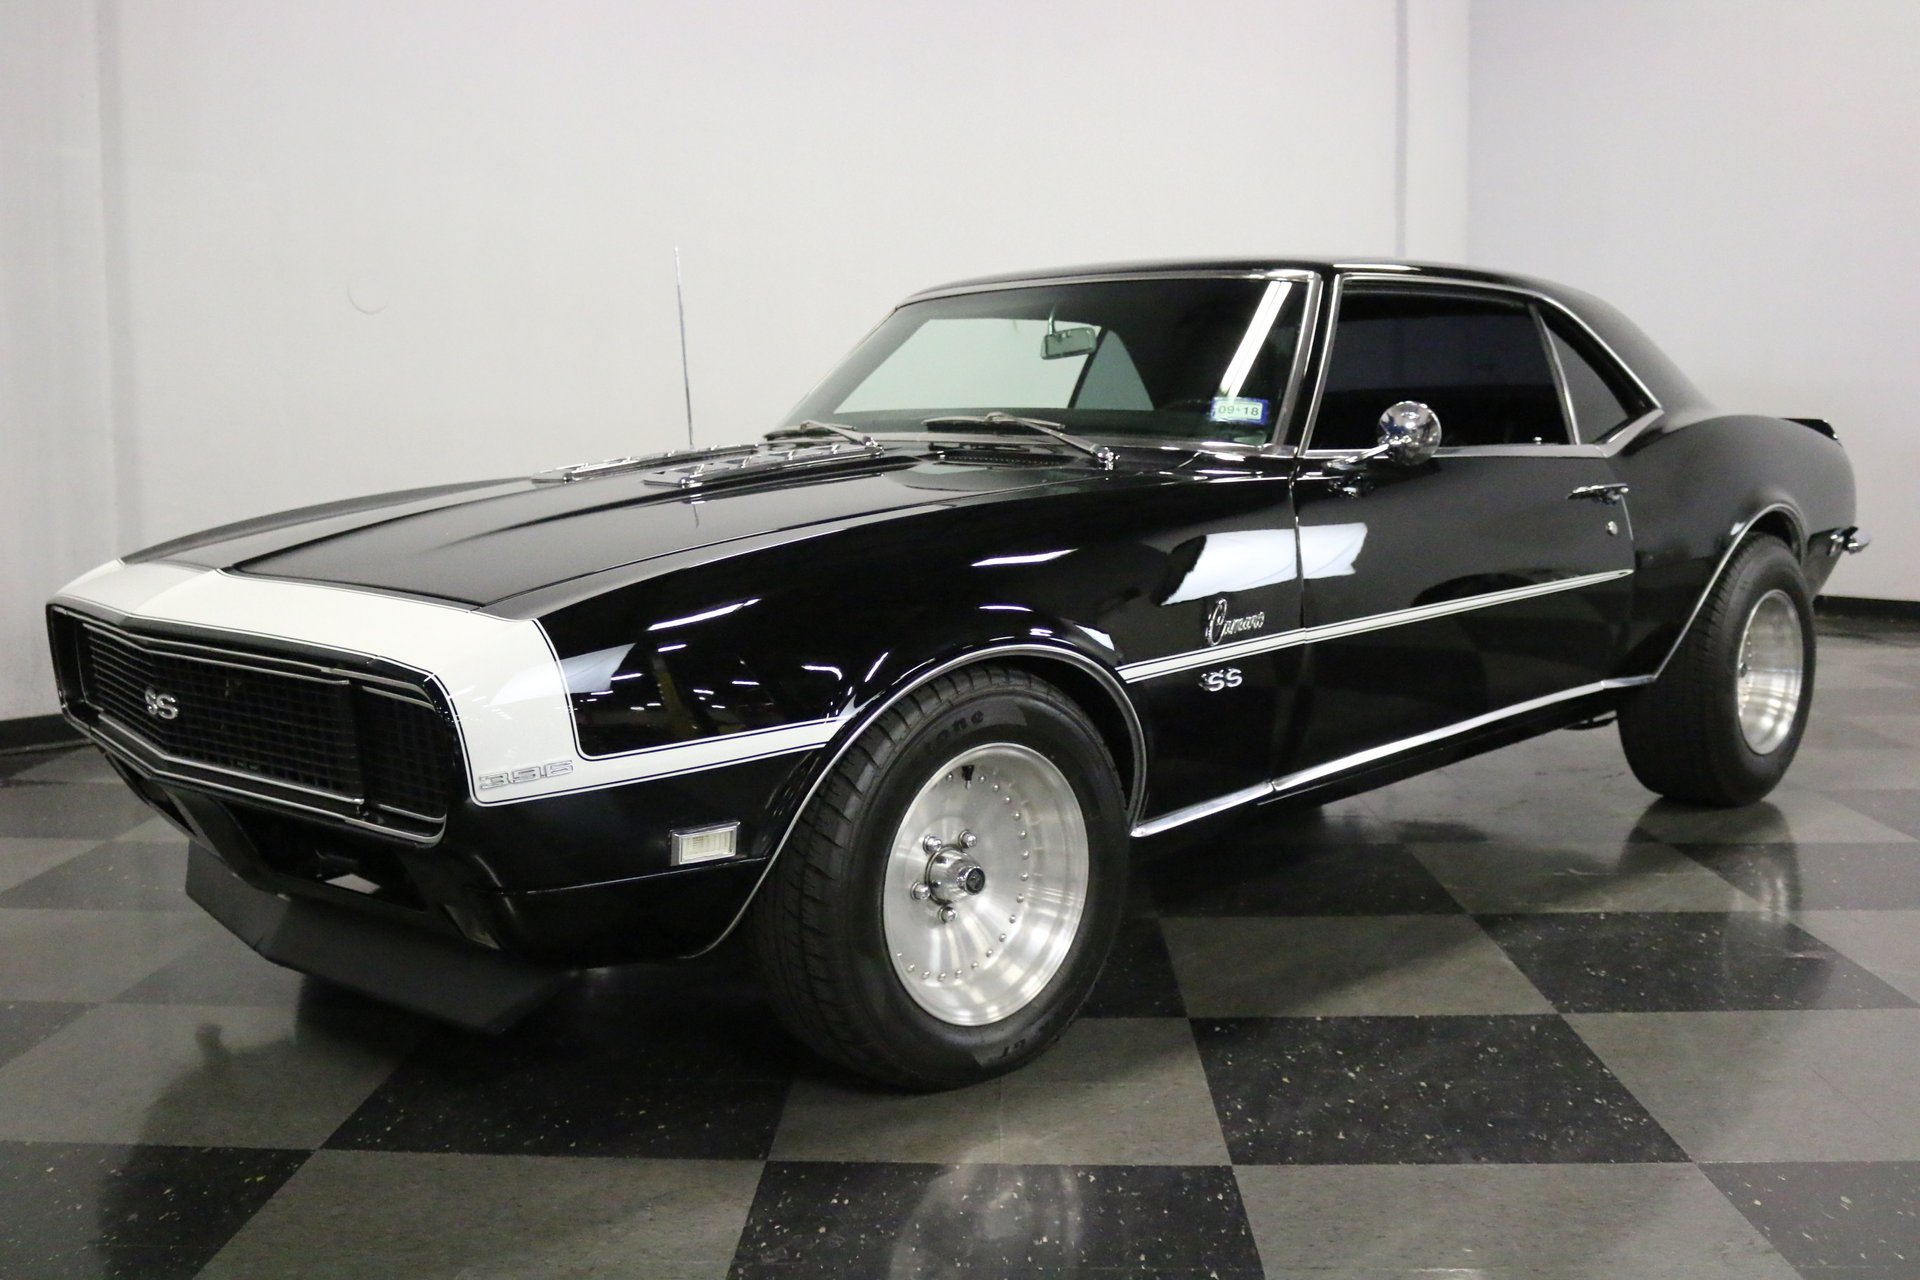 1968 Chevrolet Camaro Streetside Classics The Nations Trusted Ss Muscle Car View 360